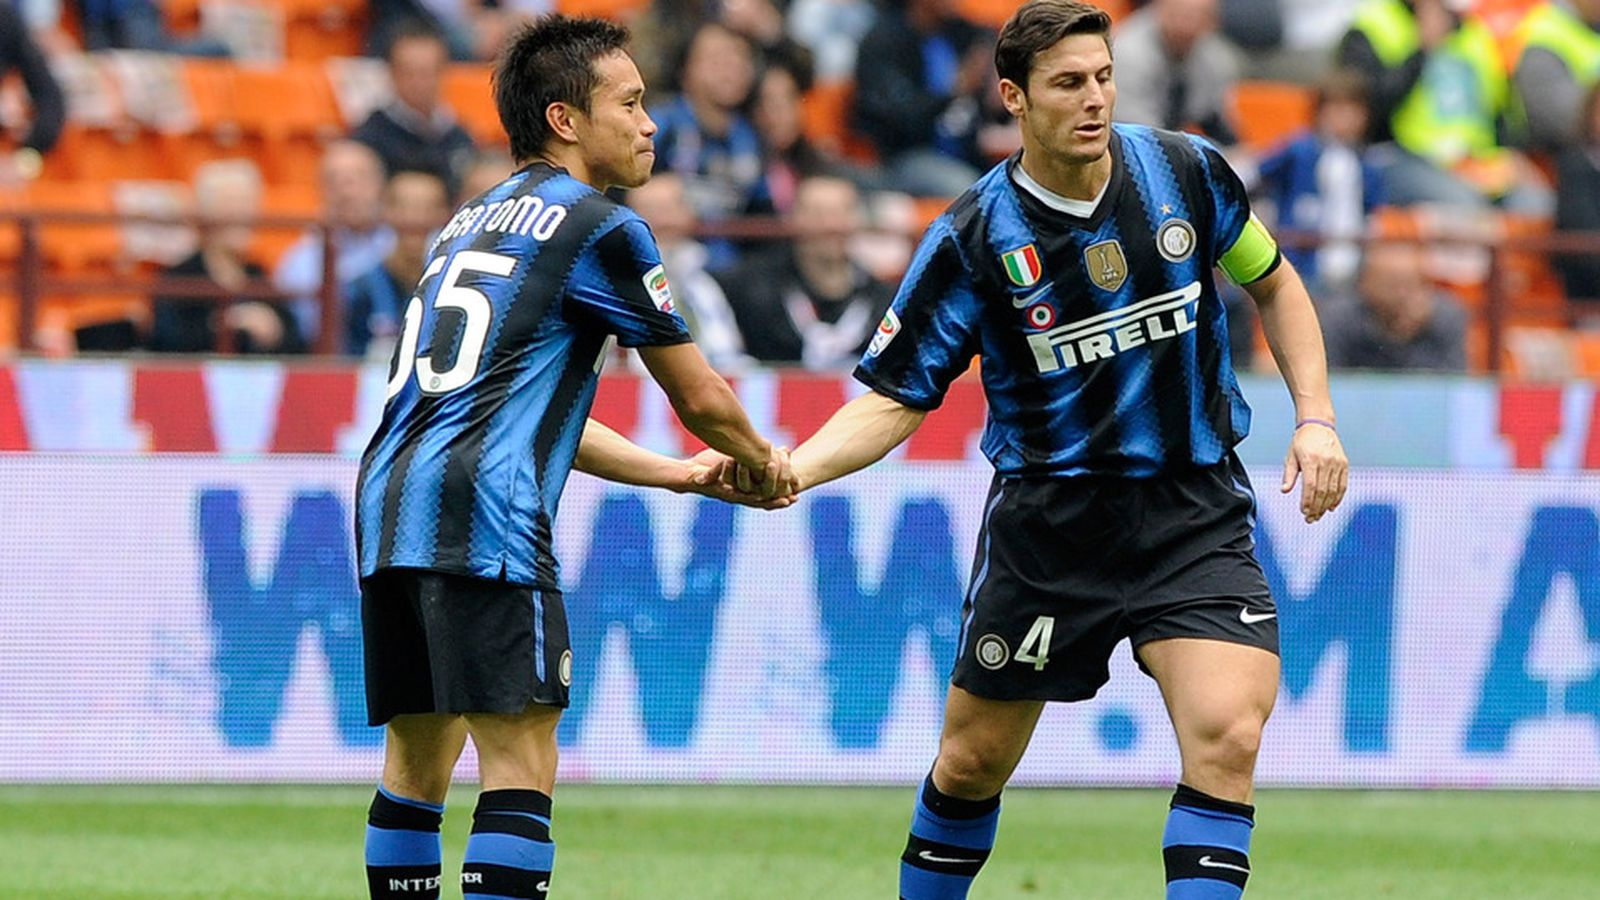 Udinese vs. Inter Milan, Preview and TV schedule: Another ...